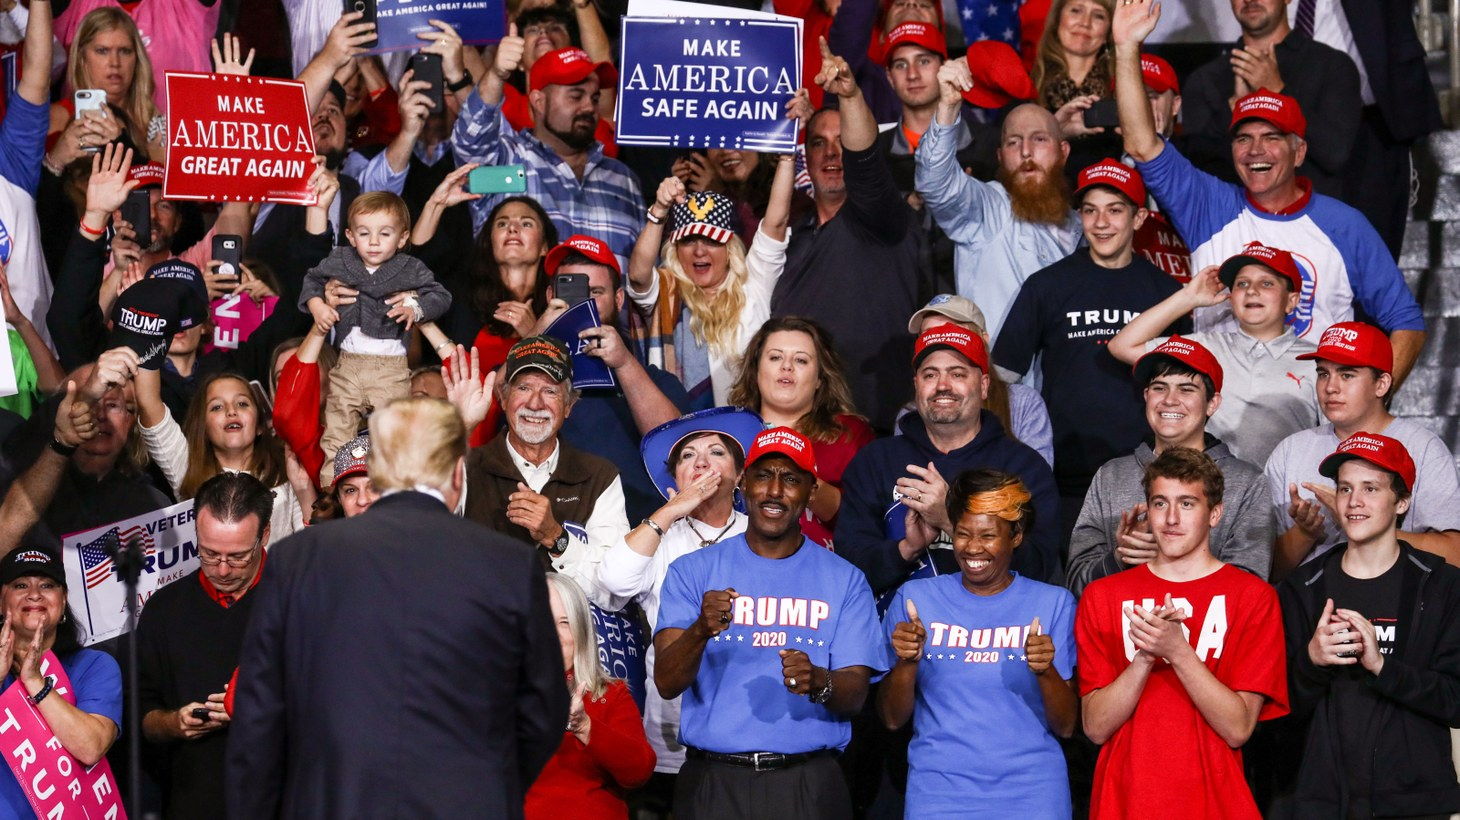 President Donald Trump at a Make America Great Again rally in Charlotte, N.C., on Oct. 26, 2018.